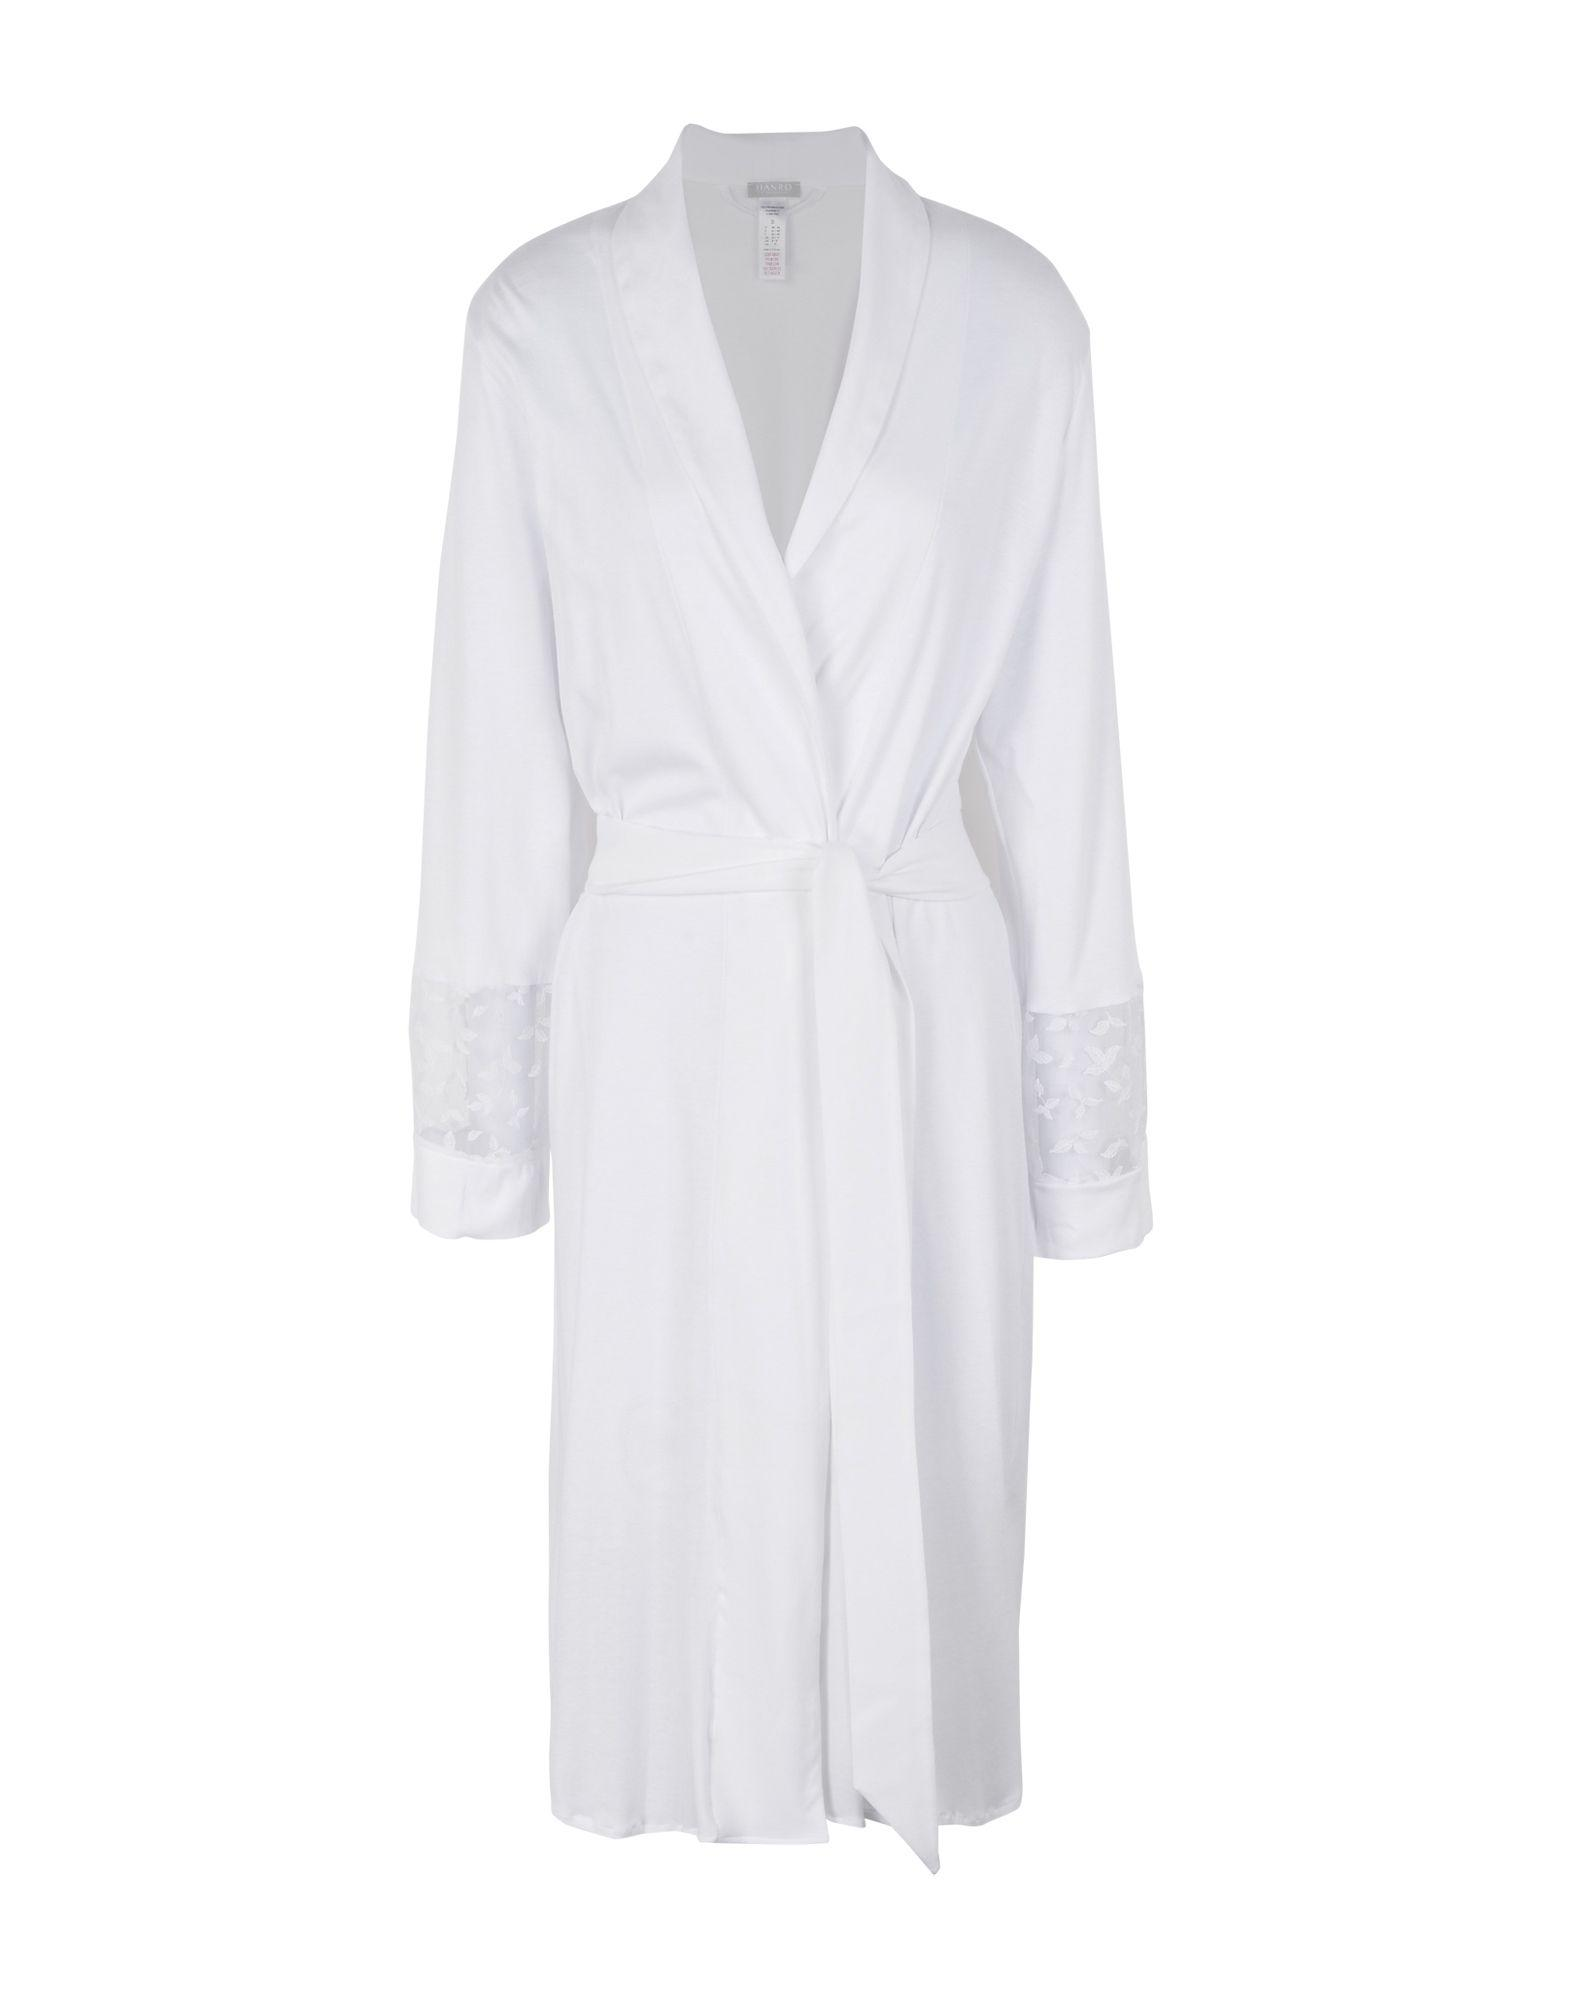 Hanro Robes In White